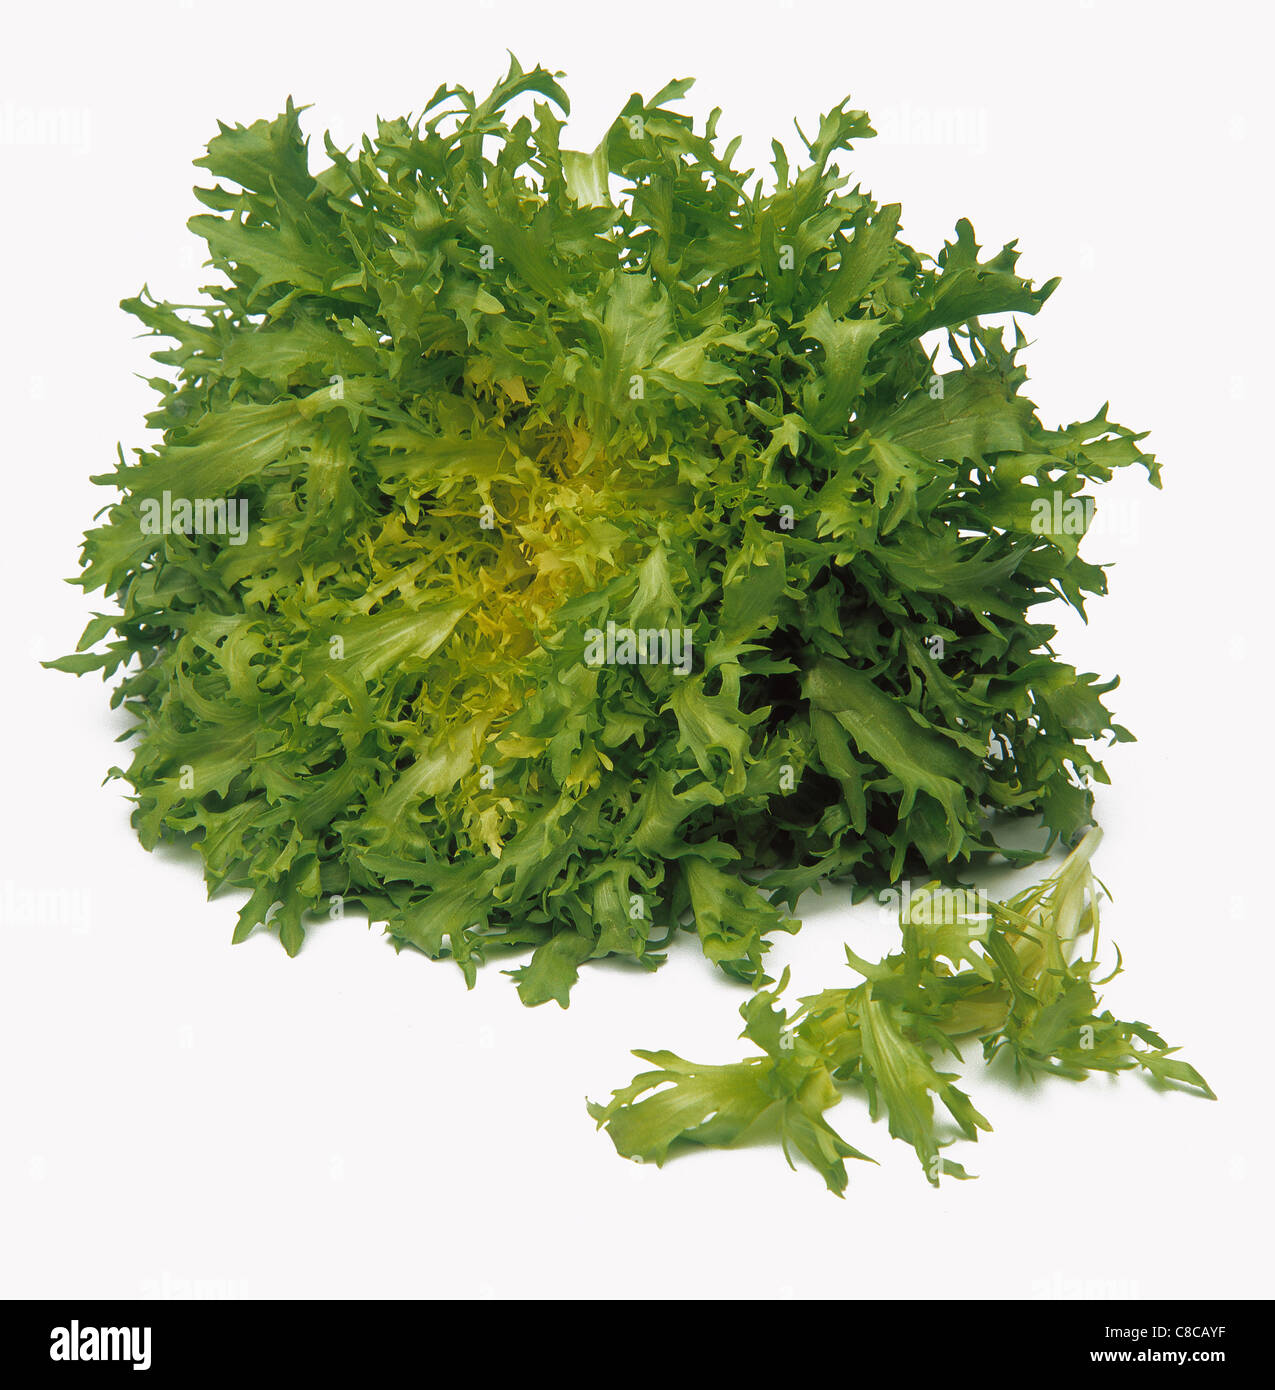 Escarole lettuce Stock Photo, Royalty Free Image: 39610019 ...